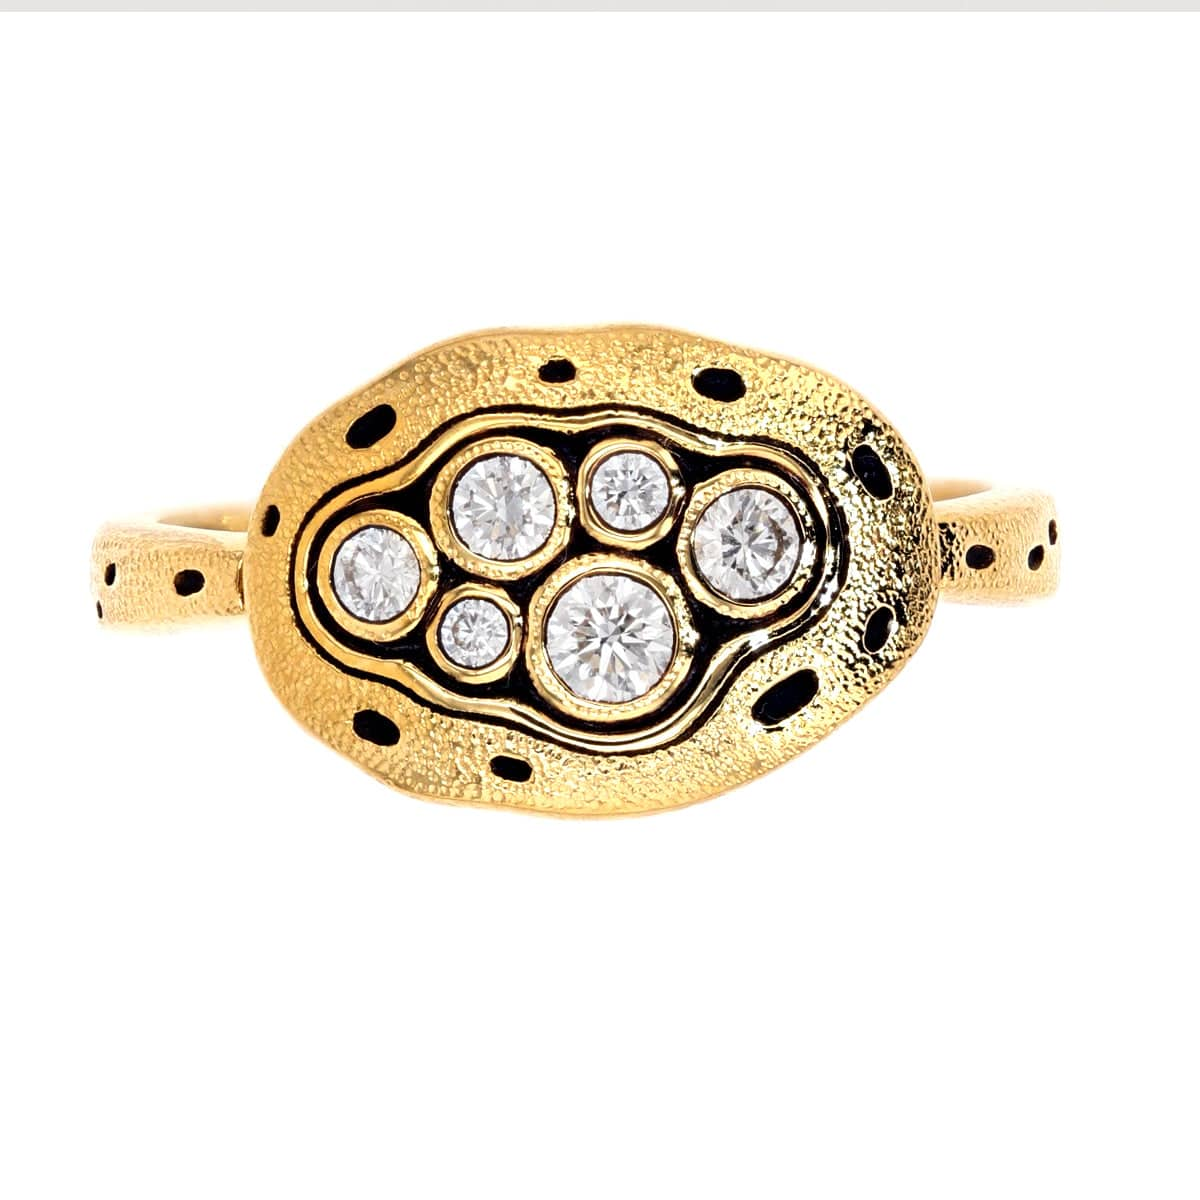 18K Little Pool Diamond Ring - R-140D-Alex Sepkus-Renee Taylor Gallery